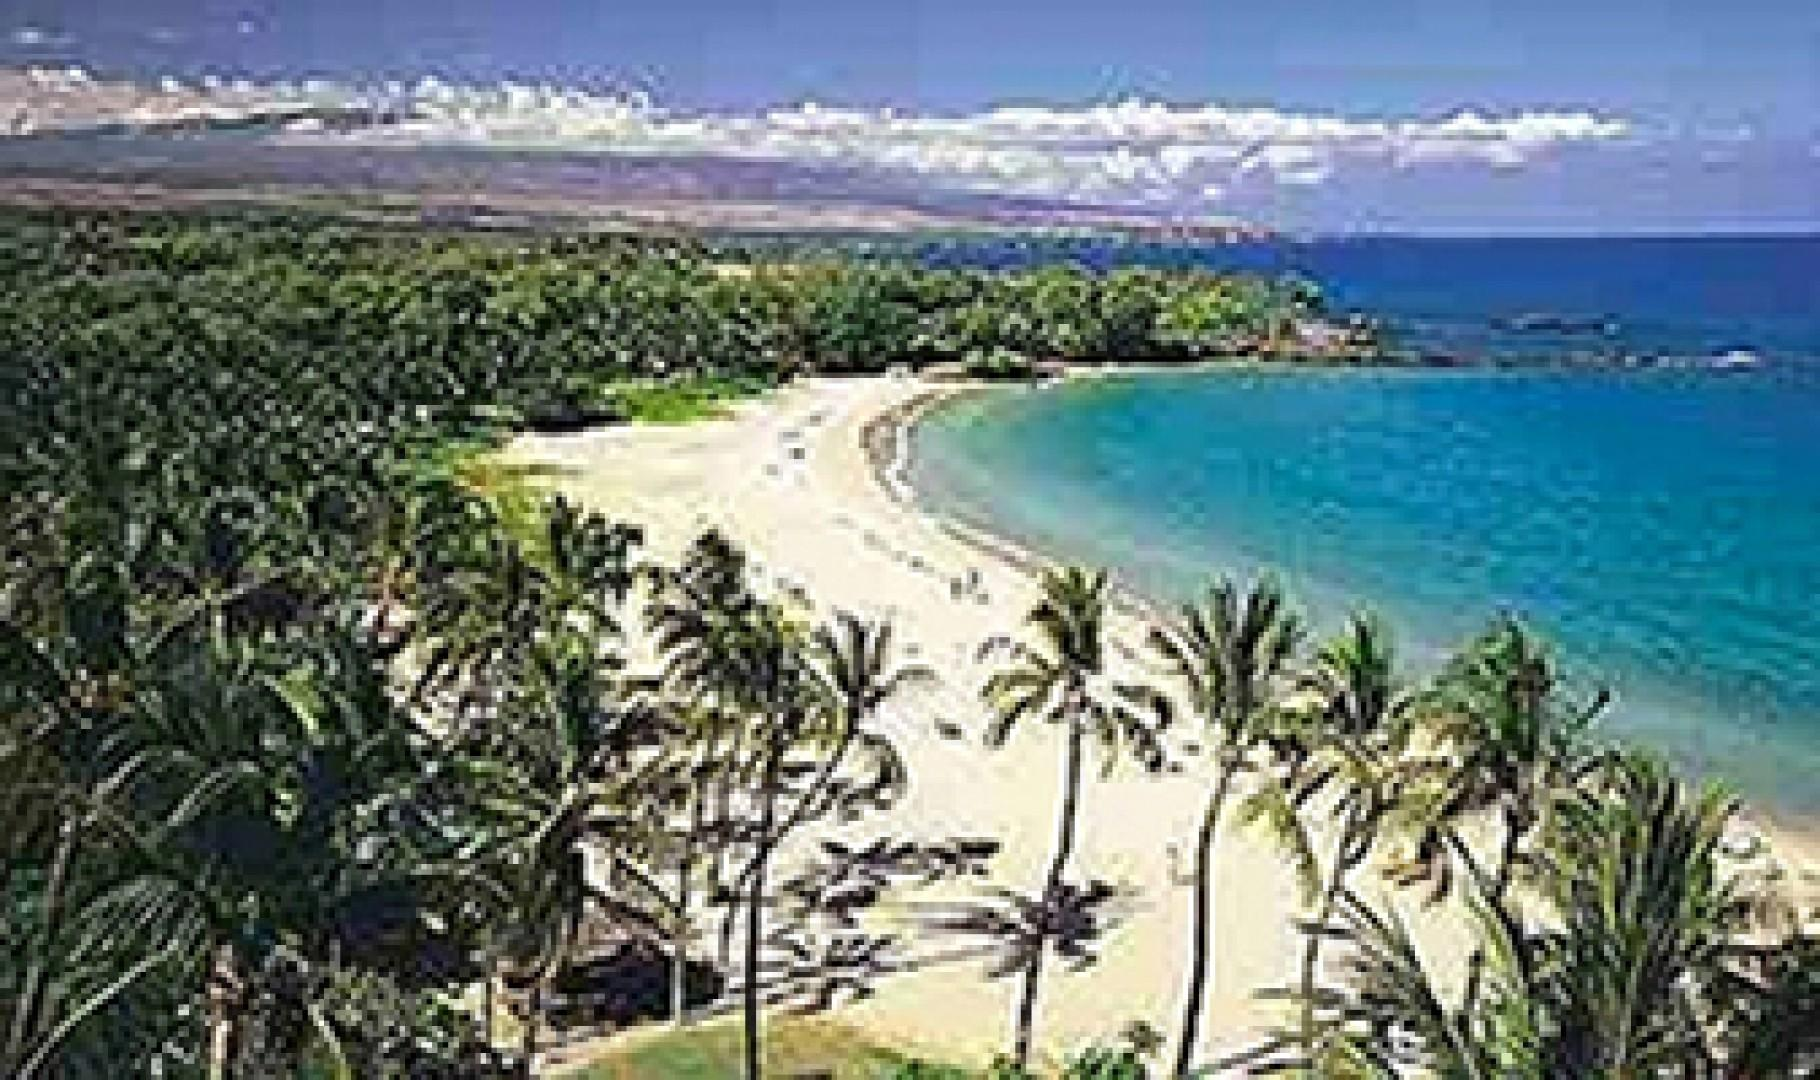 Mauna Kea Beach located a short distance from the complex.